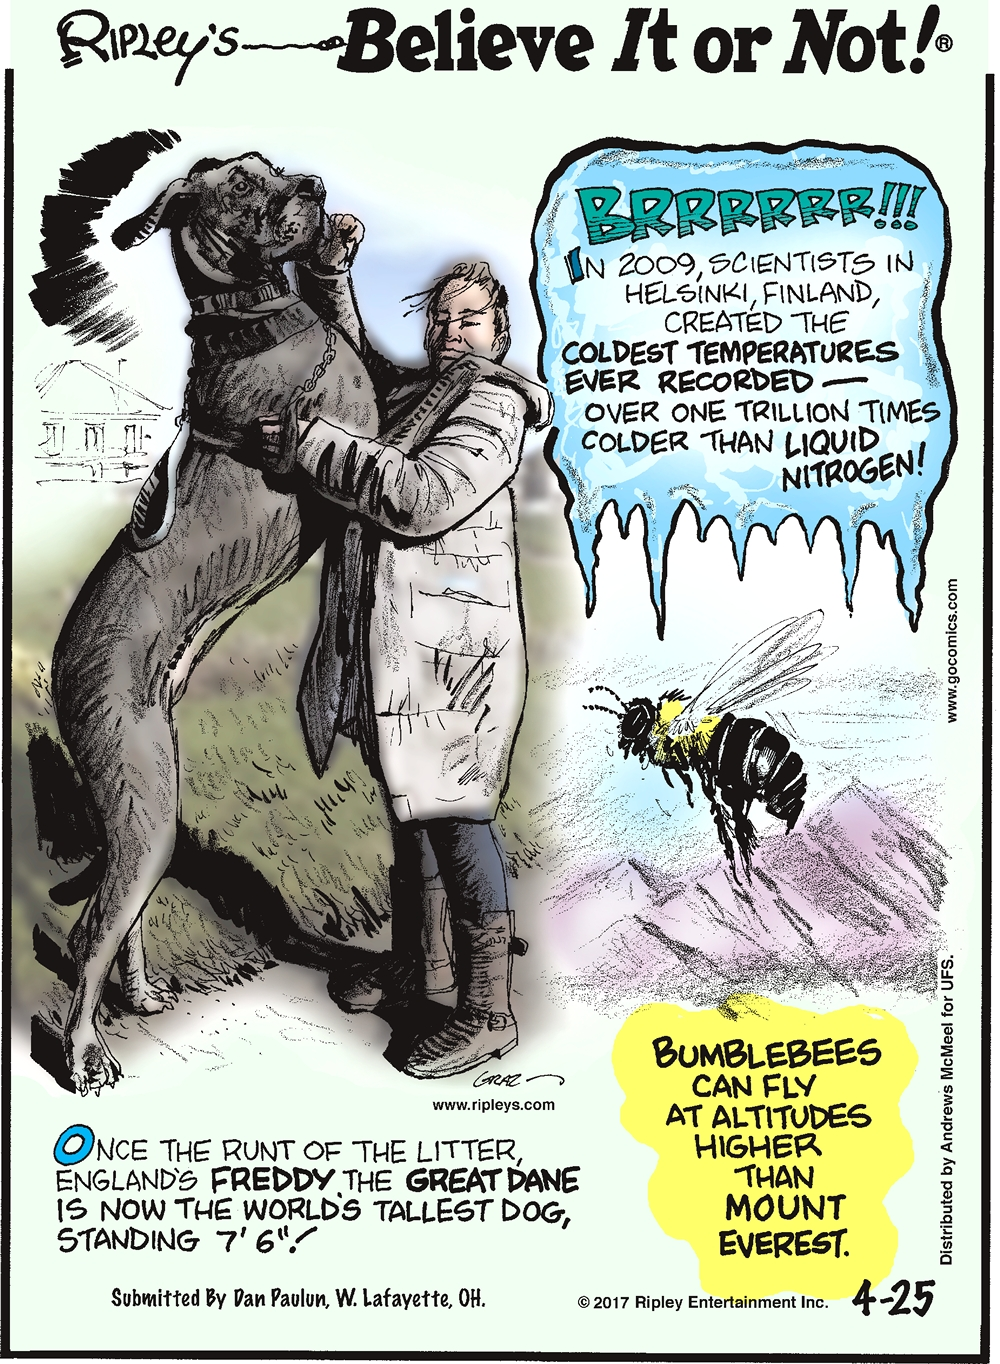 "In 2009, scientists in Helsinki, Finland created the coldest temperatures ever recorded - over one trillion times colder than liquid nitrogen!---------------------- Once the runt of the litter, England's Freddy the Great Dane is now the world's tallest dog, standing 7'6""! Submitted by Dan Paulun, W. Lafayette, OH.-------------------- Bumblebees can fly at altitudes higher than Mount Everest."